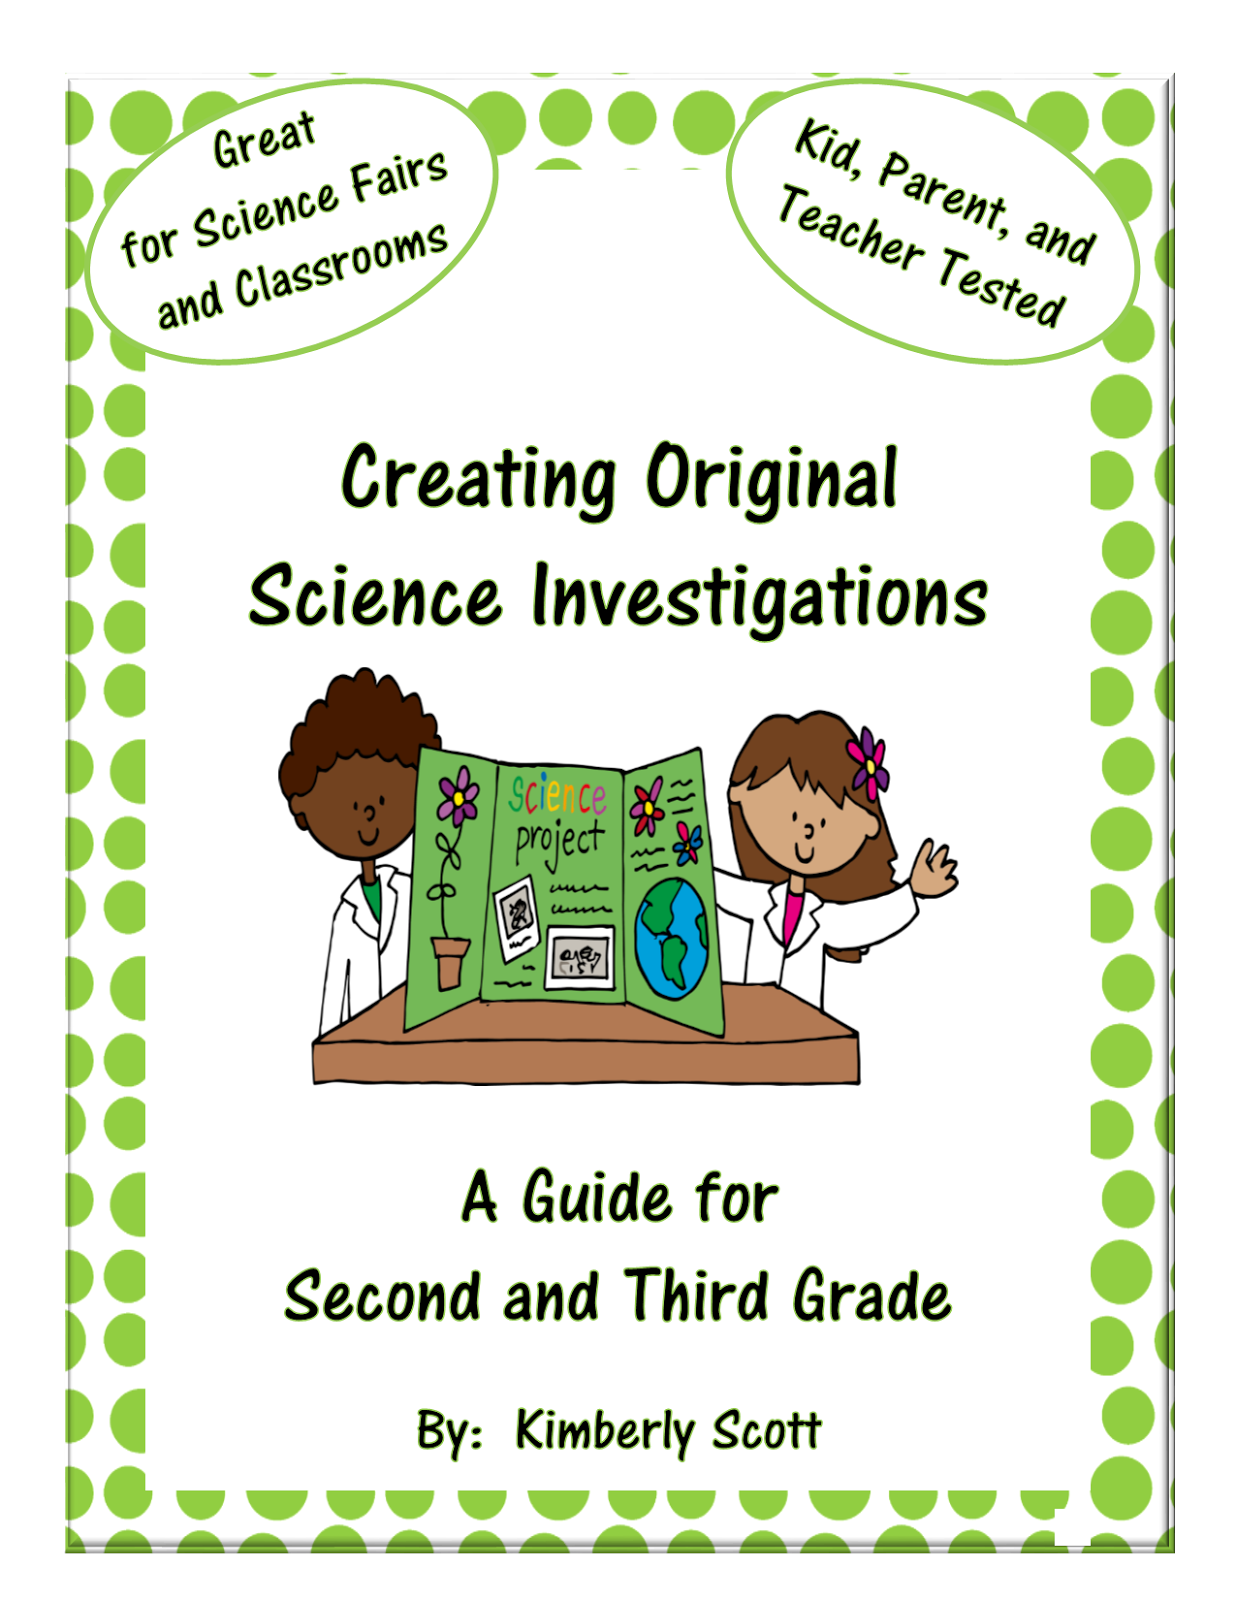 http://www.teacherspayteachers.com/Product/Creating-Science-Investigations-for-2nd-and-3rd-Grade-Science-Fairs-and-Class-1208432